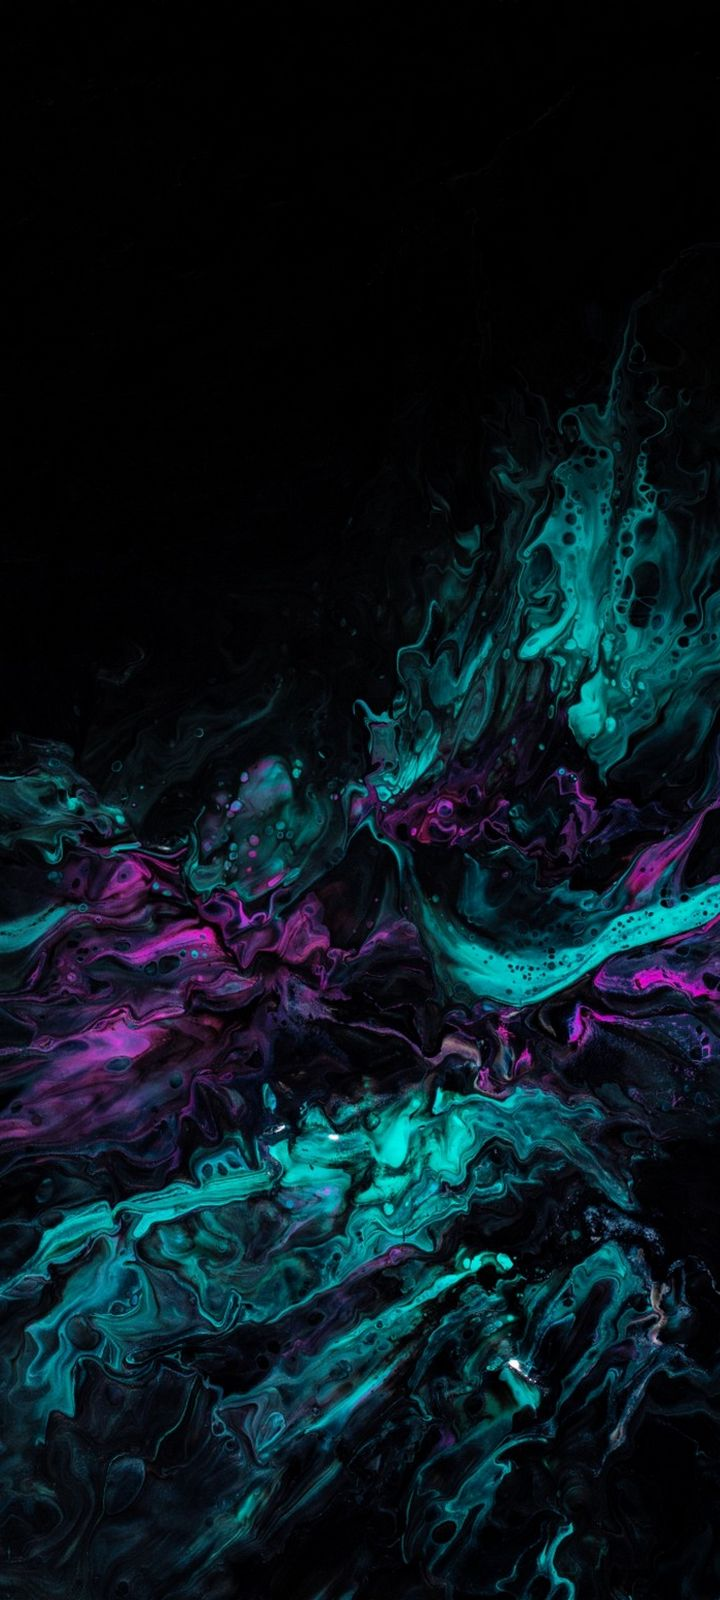 Paint Stains Mixing Wallpaper 720x1600